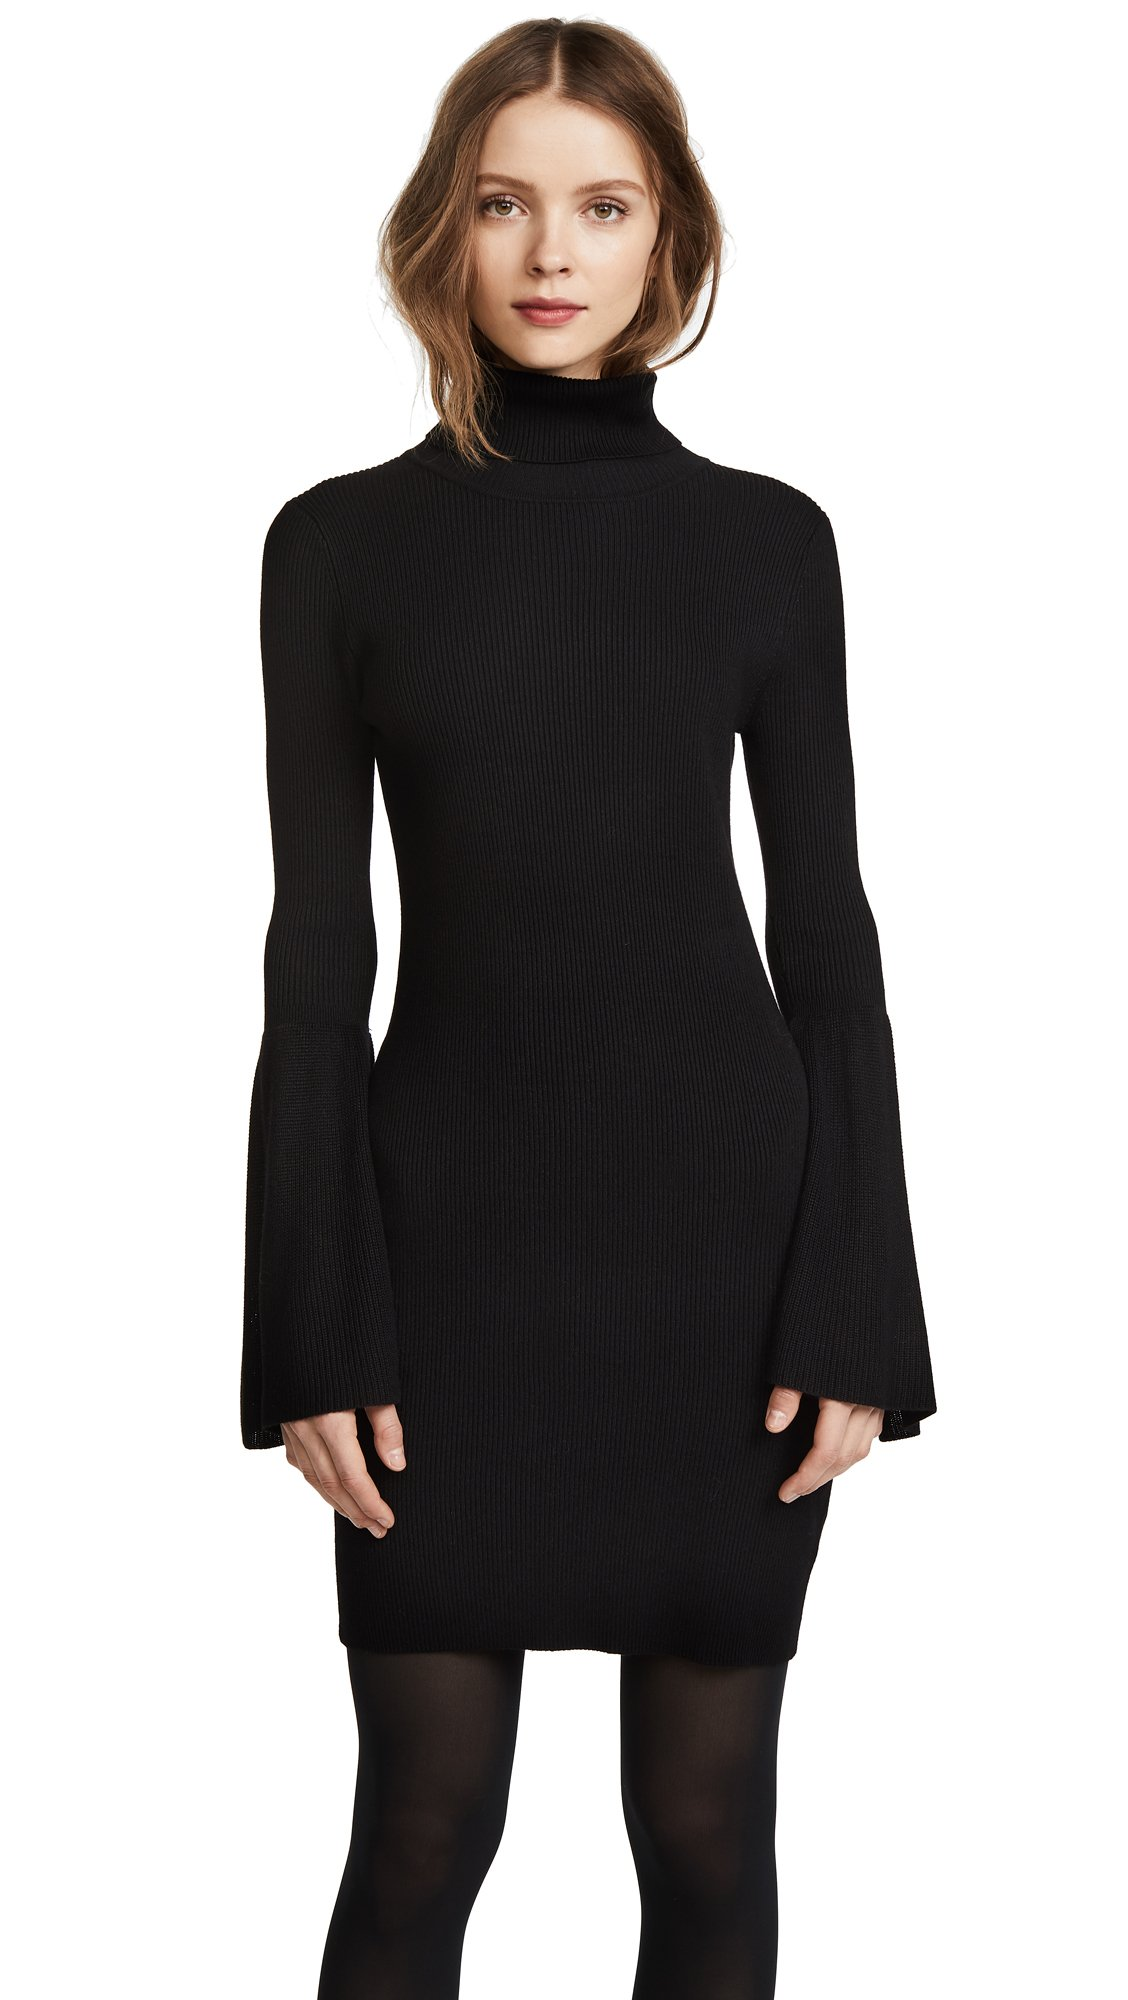 525 America Women's Rib Tulip Sleeve Turtleneck Dress, Black, Small